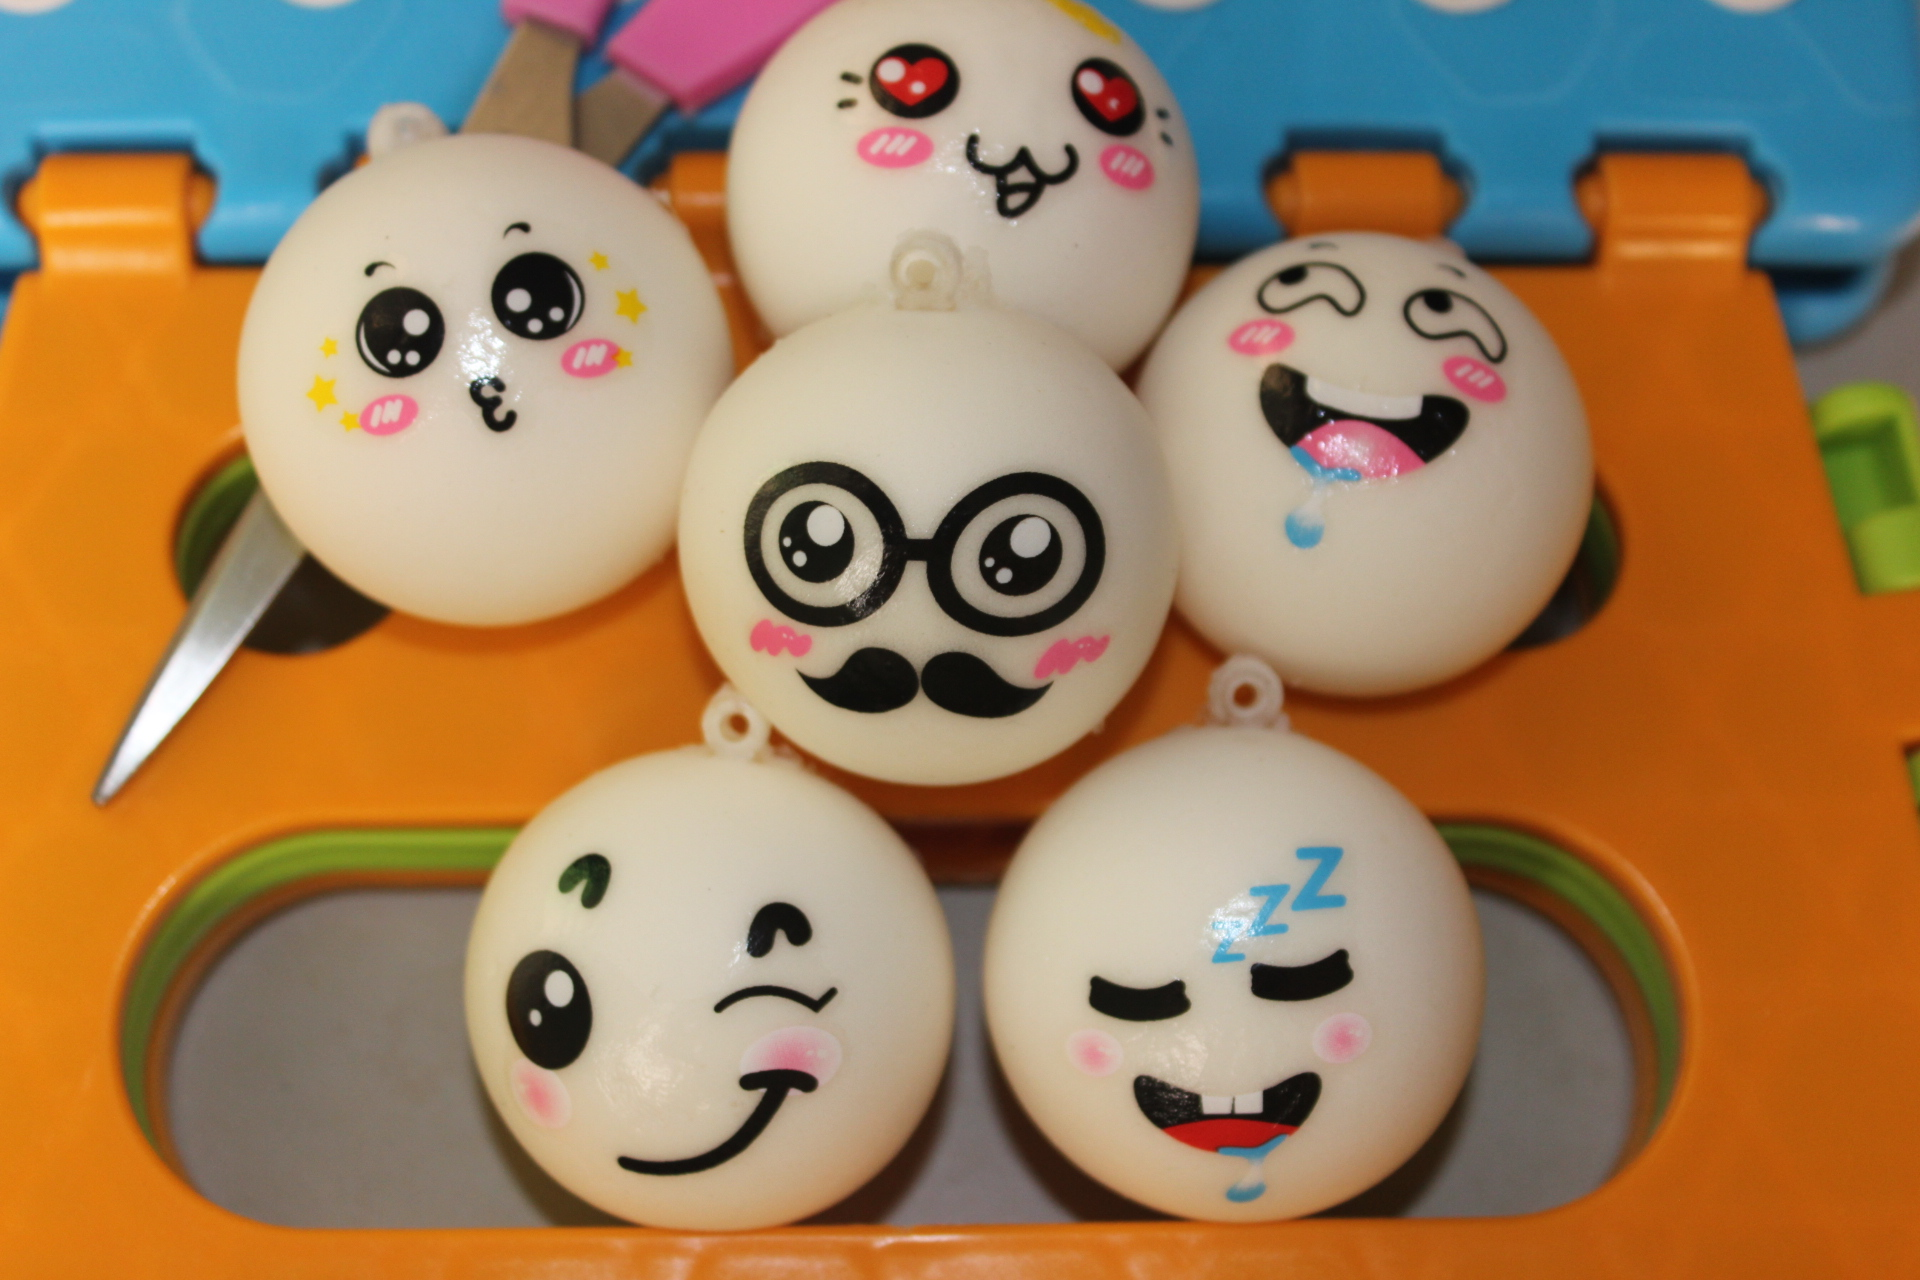 wholesale 30pcs/lot 10cm kawaii 6 Expression squishy jumbo Smiling face squeeze bun toys for cell phone charm squishies bread